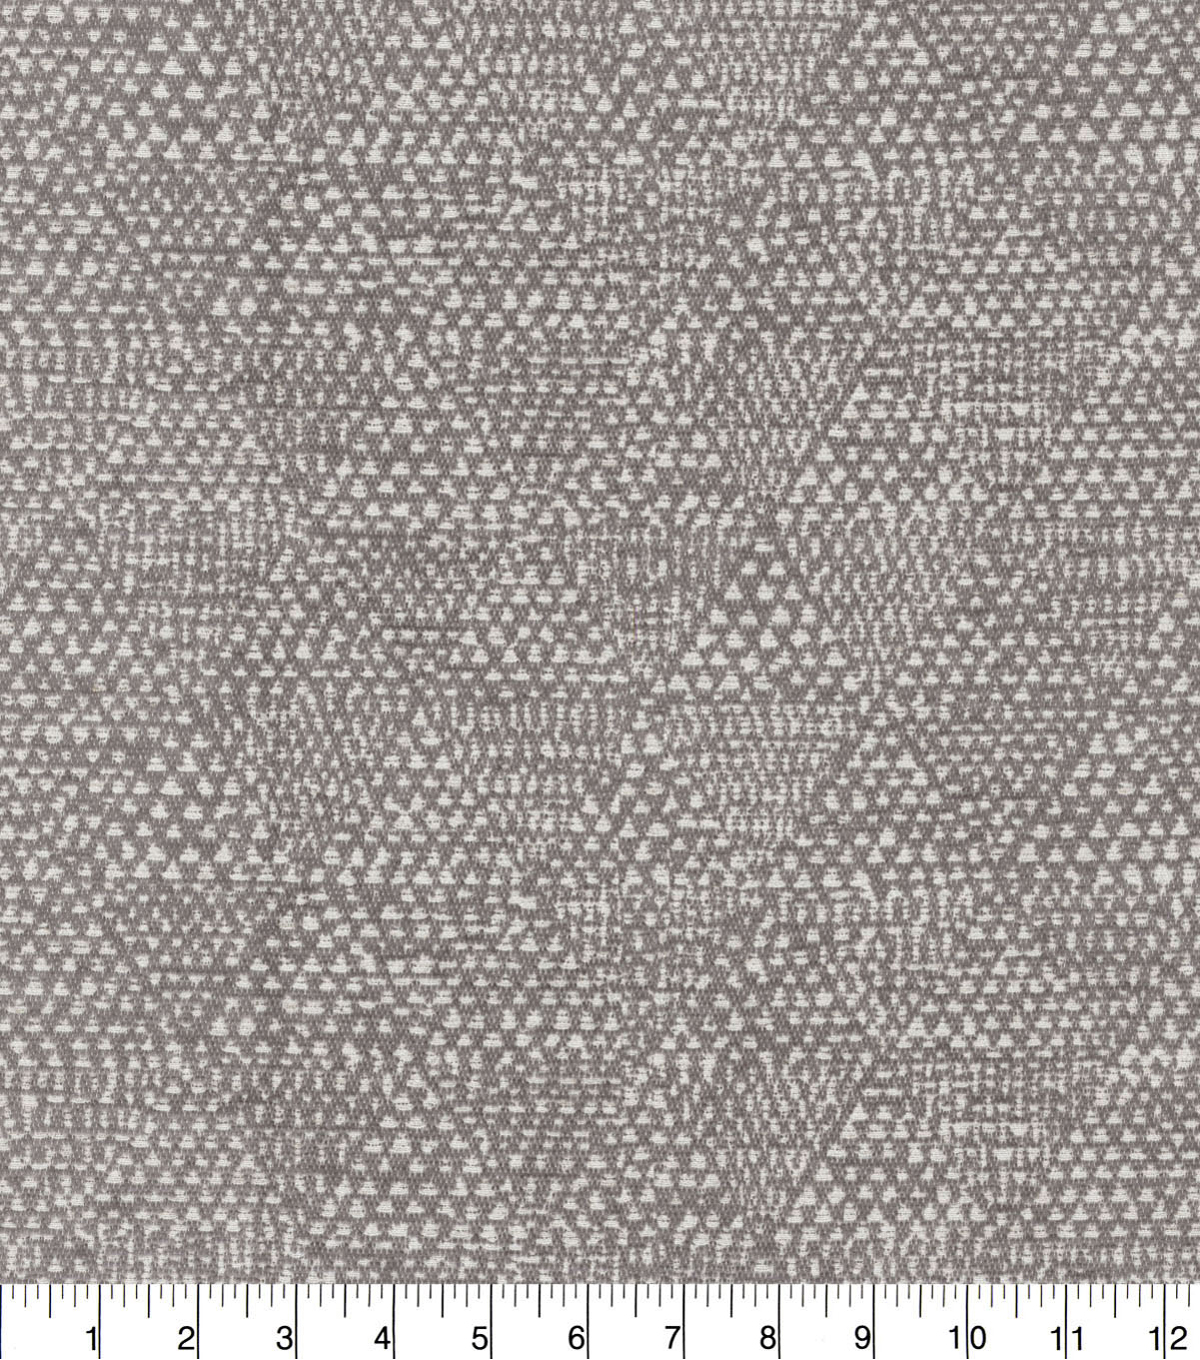 PKL Studio Upholstery Décor Fabric 9\u0022x9\u0022 Swatch-All Angles Cinder